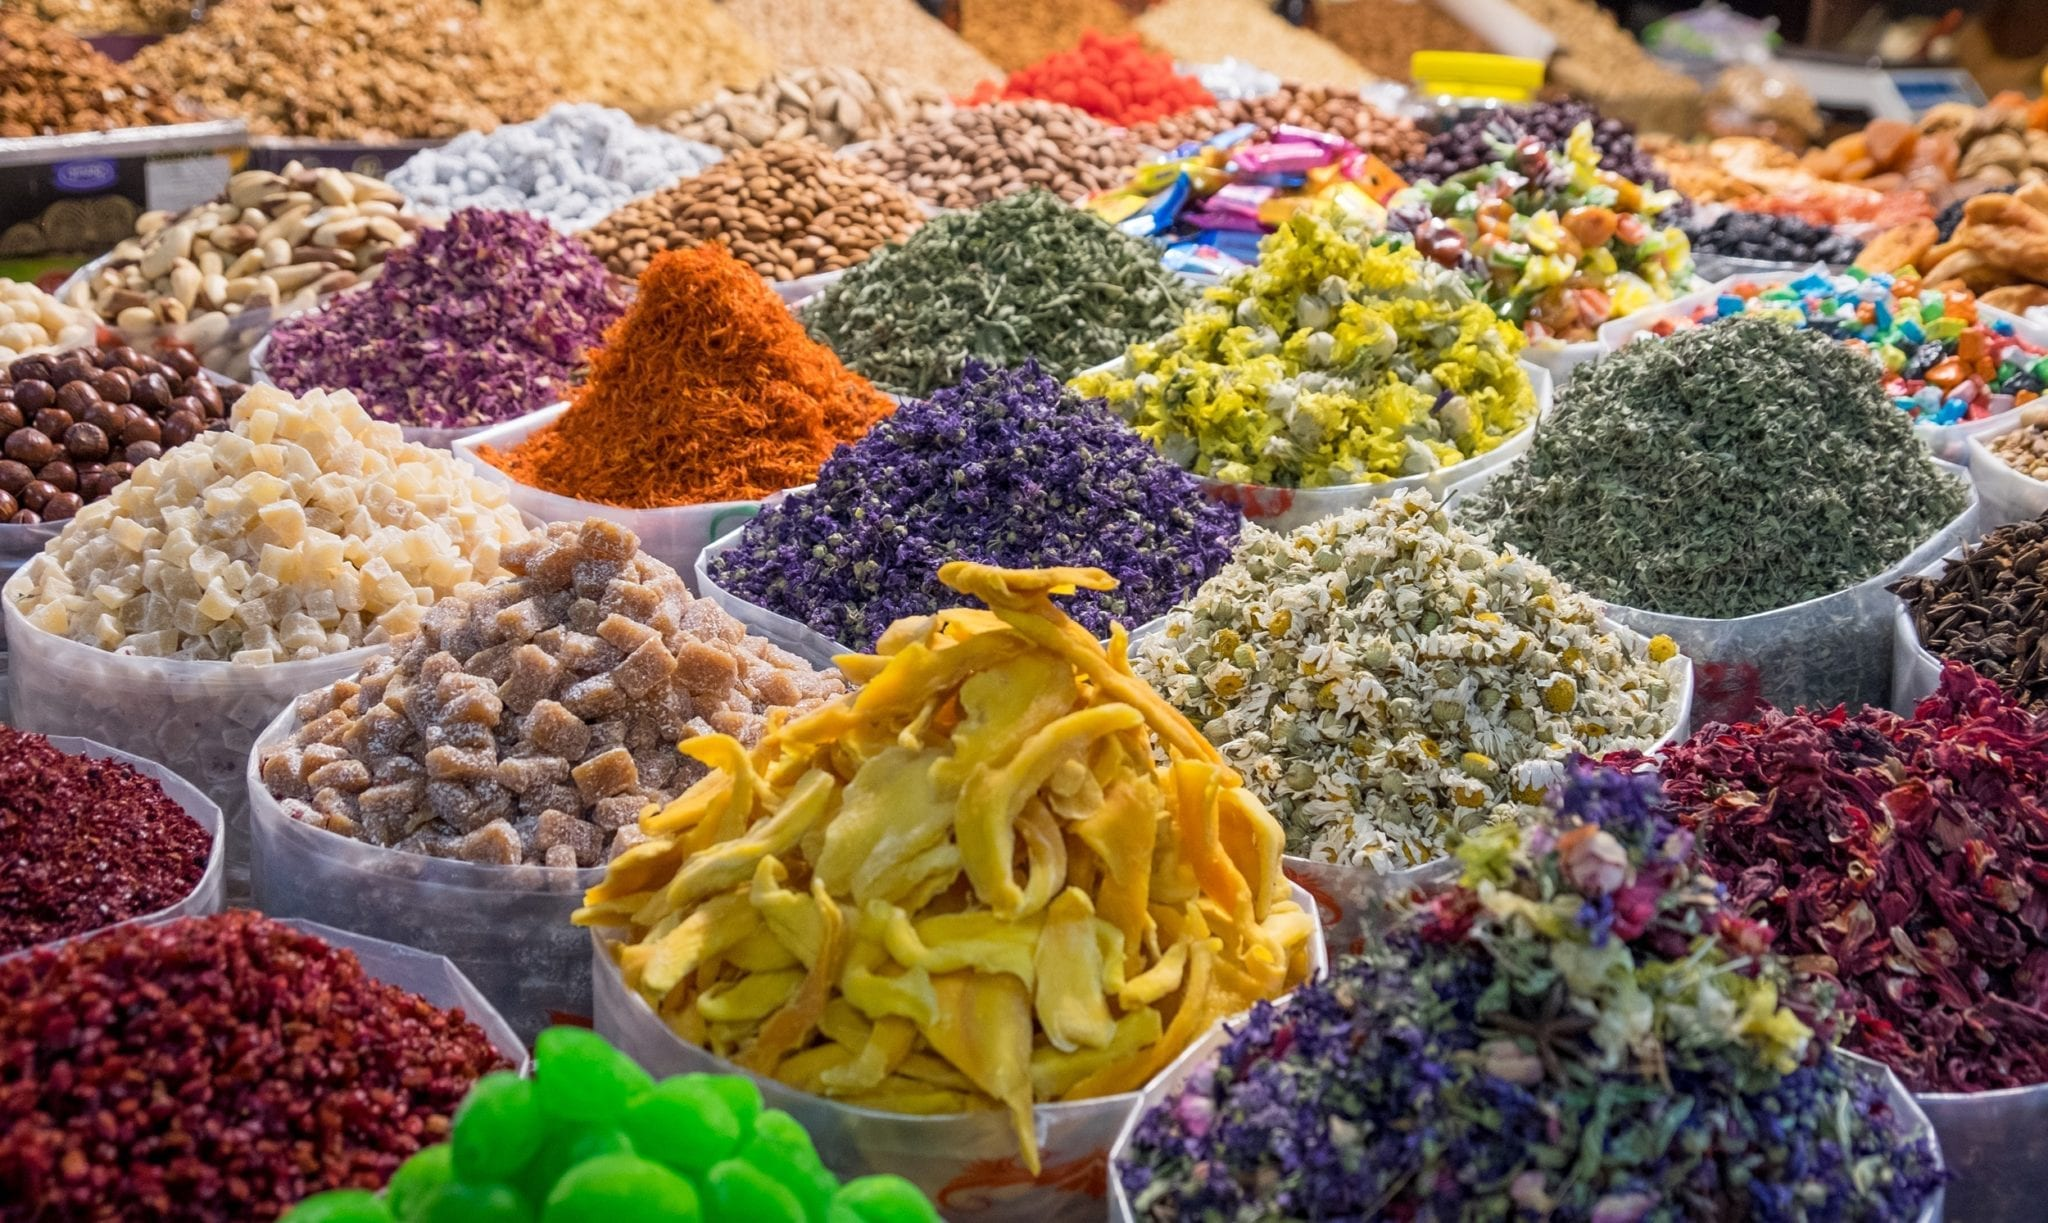 Piles of spices and dried fruits in perfectly conical piles in Baku, Azerbaijan.